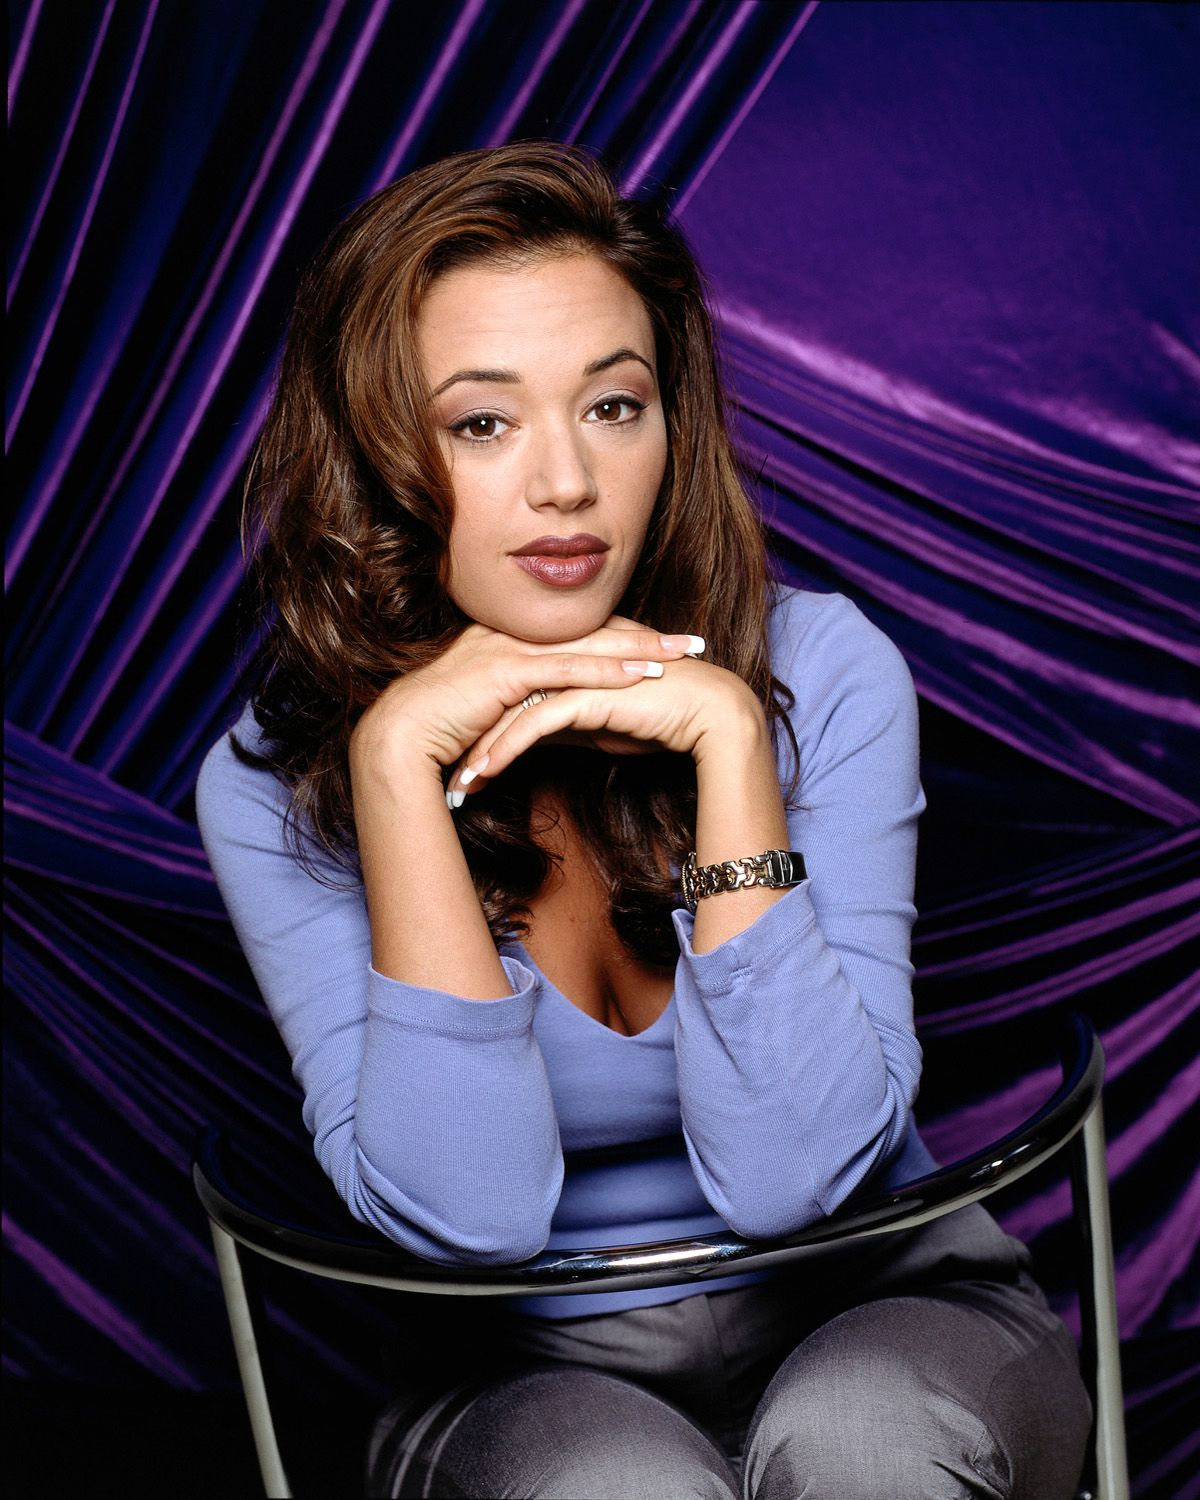 Leah Marie Remini / King Of Queens 8 x 10 / 8x10 GLOSSY